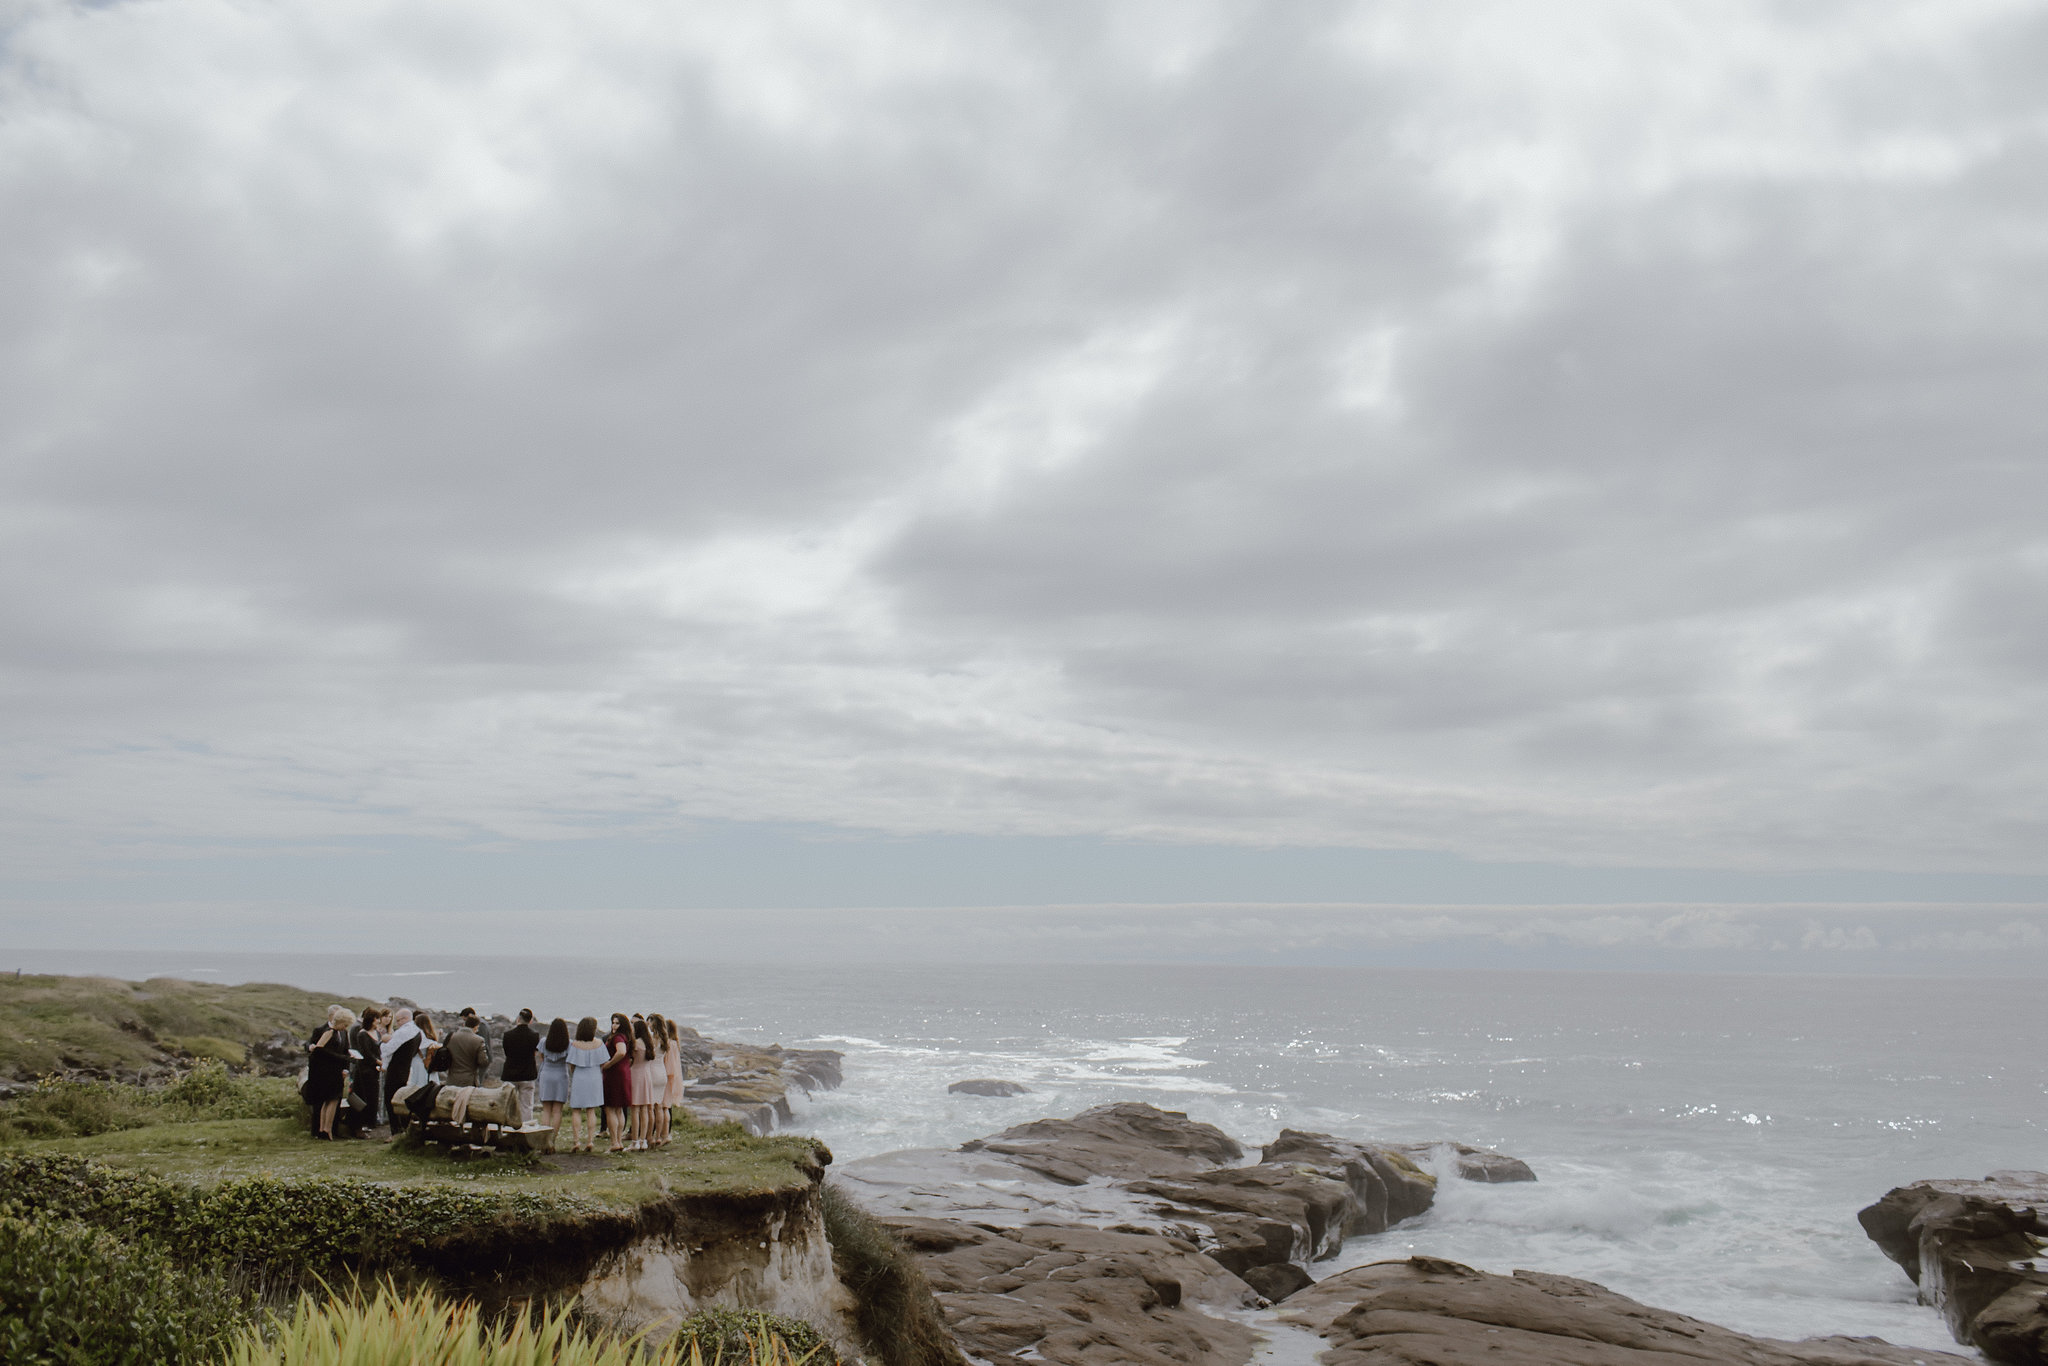 This bluff overlooking the ocean is the absolute perfect spot to tie the knot!! It